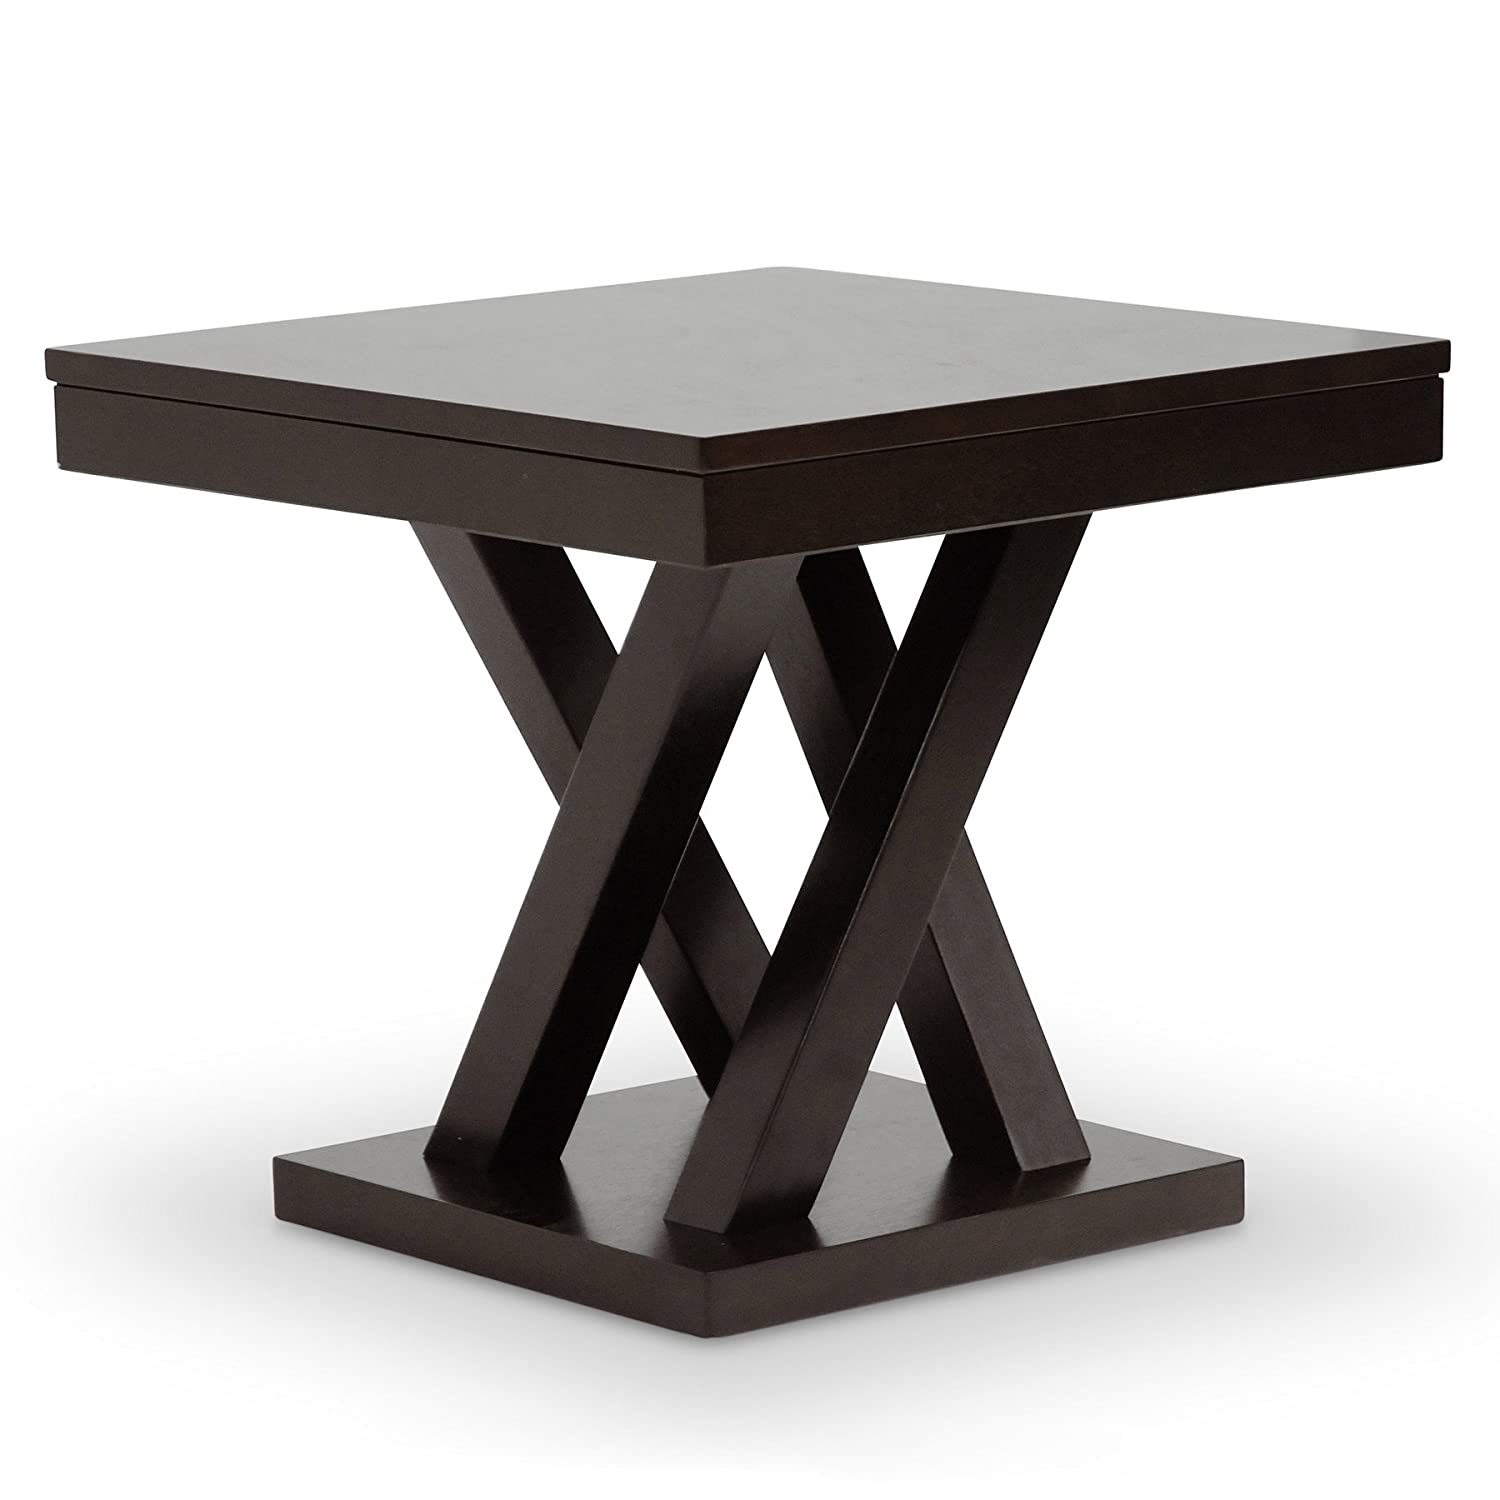 Side Table For Living Room. Amazon com  Baxton Studio Everdon Modern End Table Dark Brown Kitchen Dining